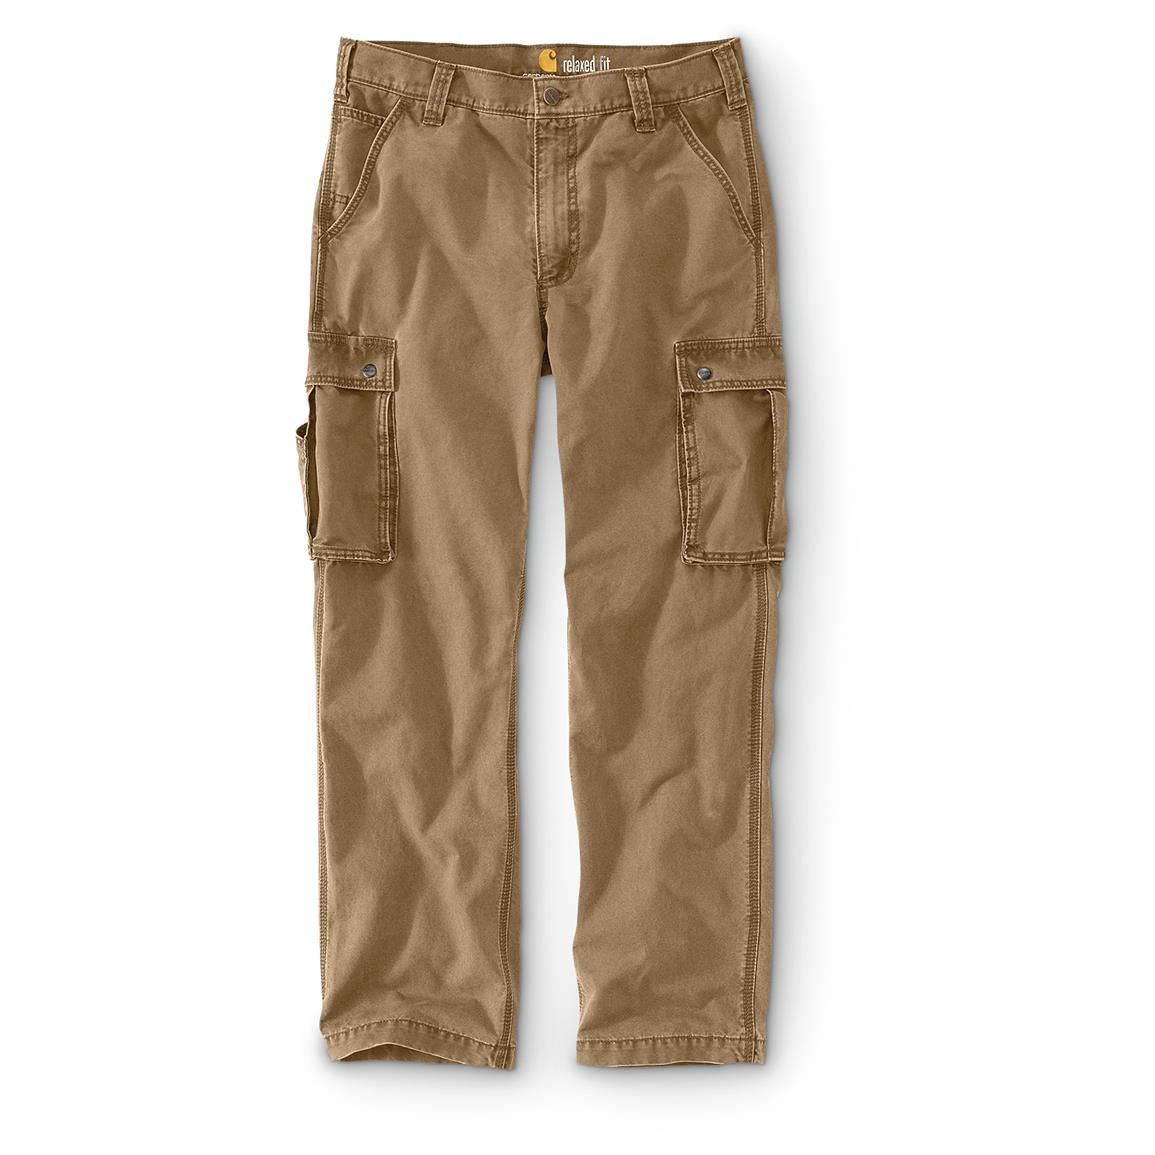 Carhartt Rugged Cargo Pants, Dark Khaki